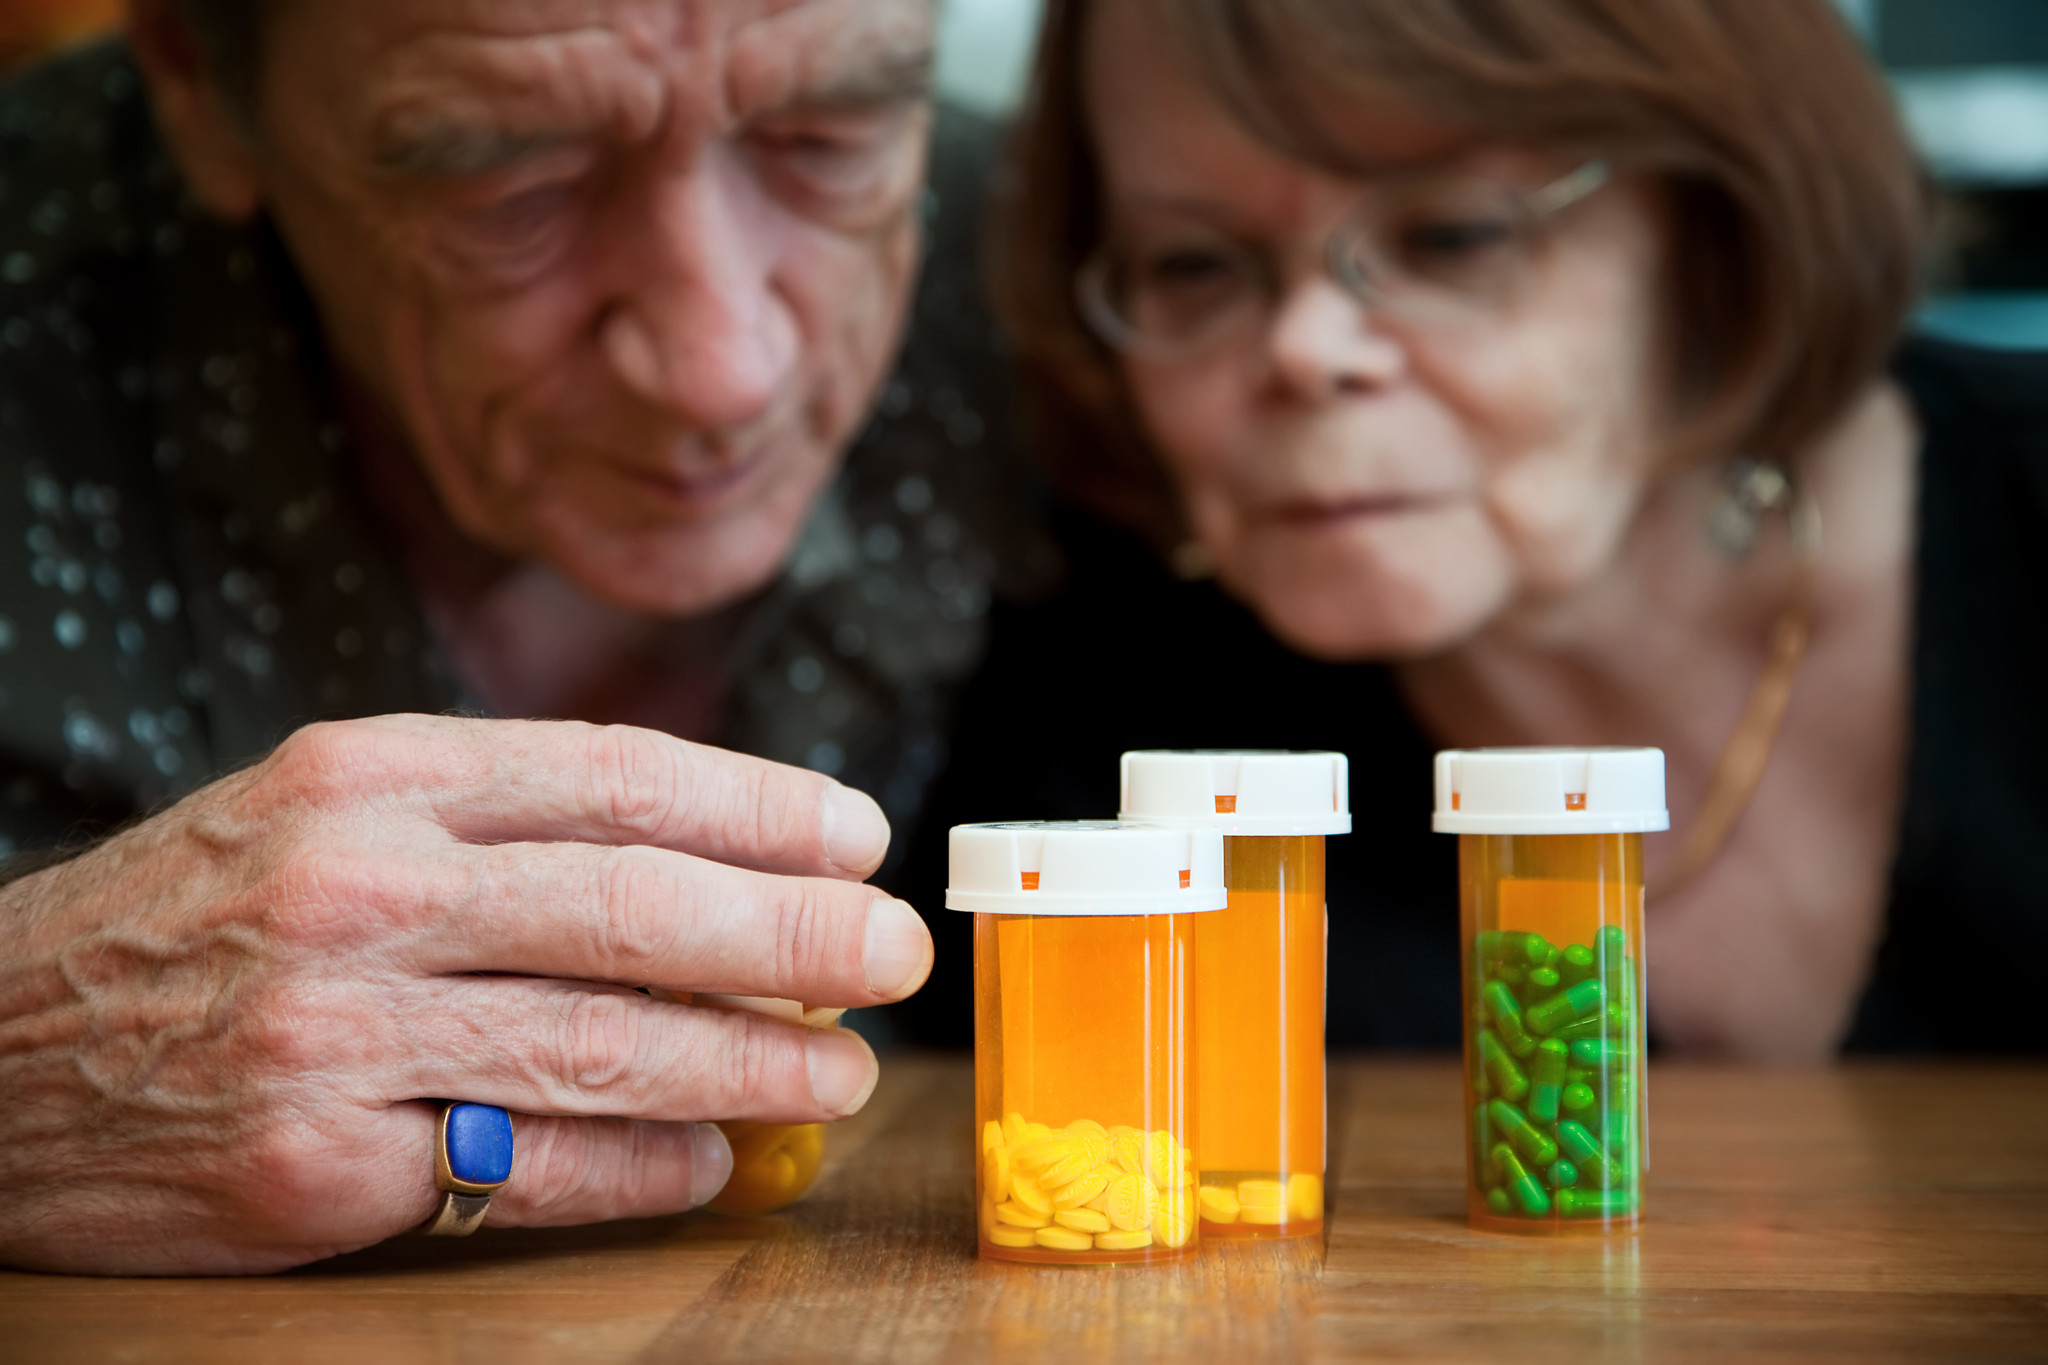 Side Effects or Aging? When the Caregiver Knows Better Than the Doctor